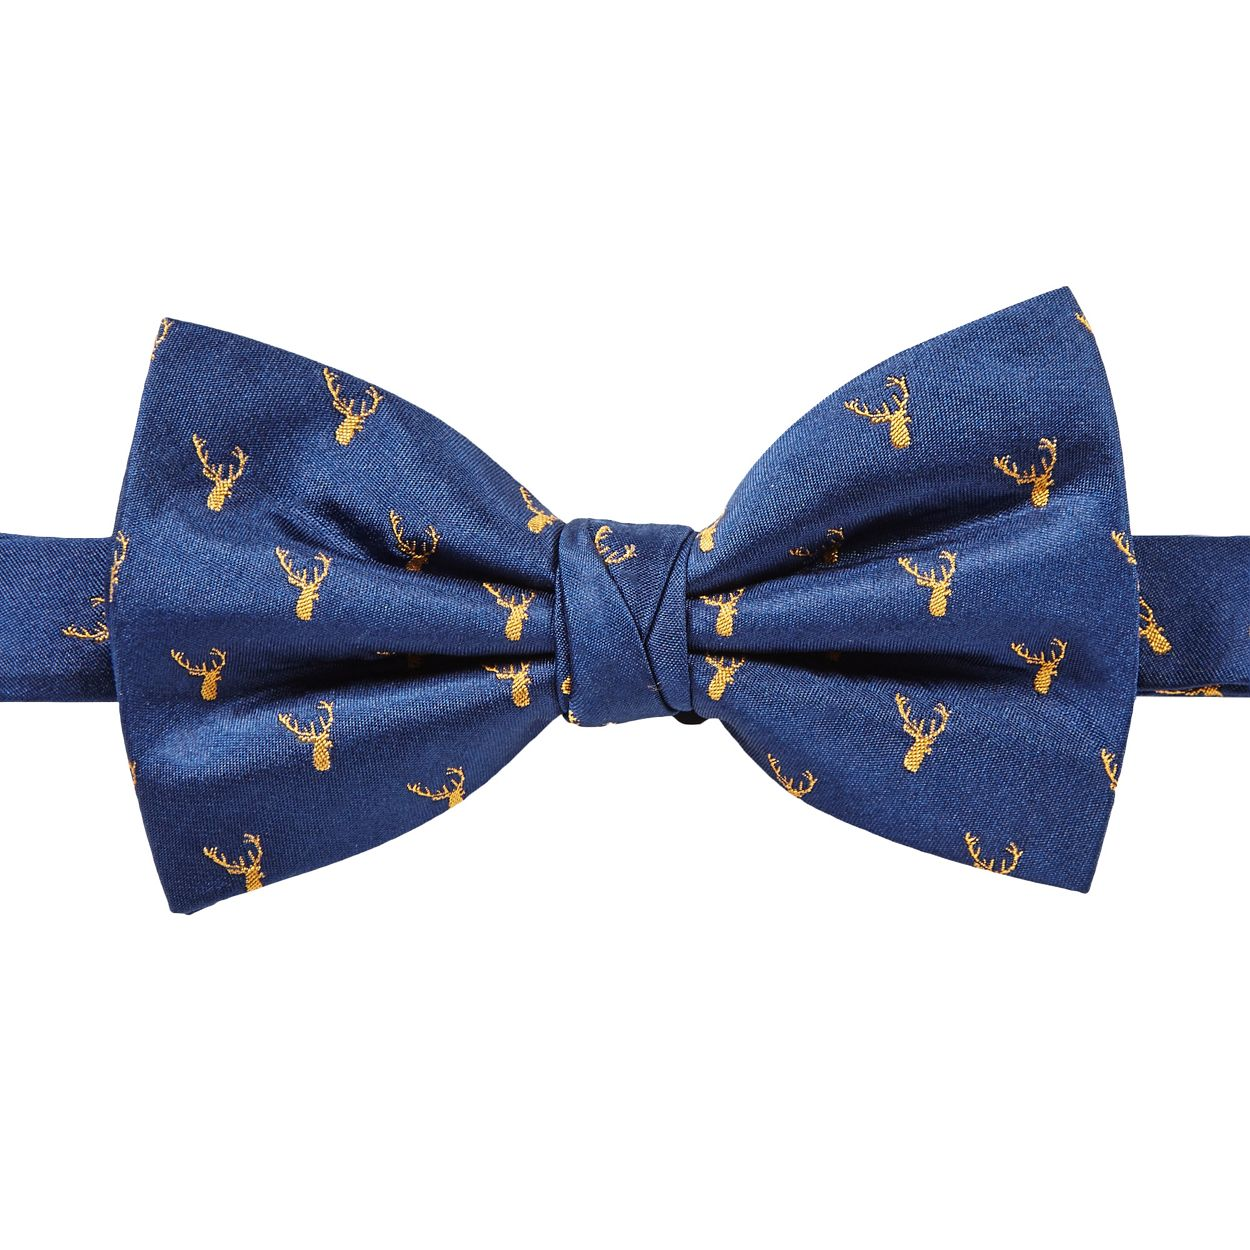 Hammond & Co. by Patrick Grant Navy deer bow tie